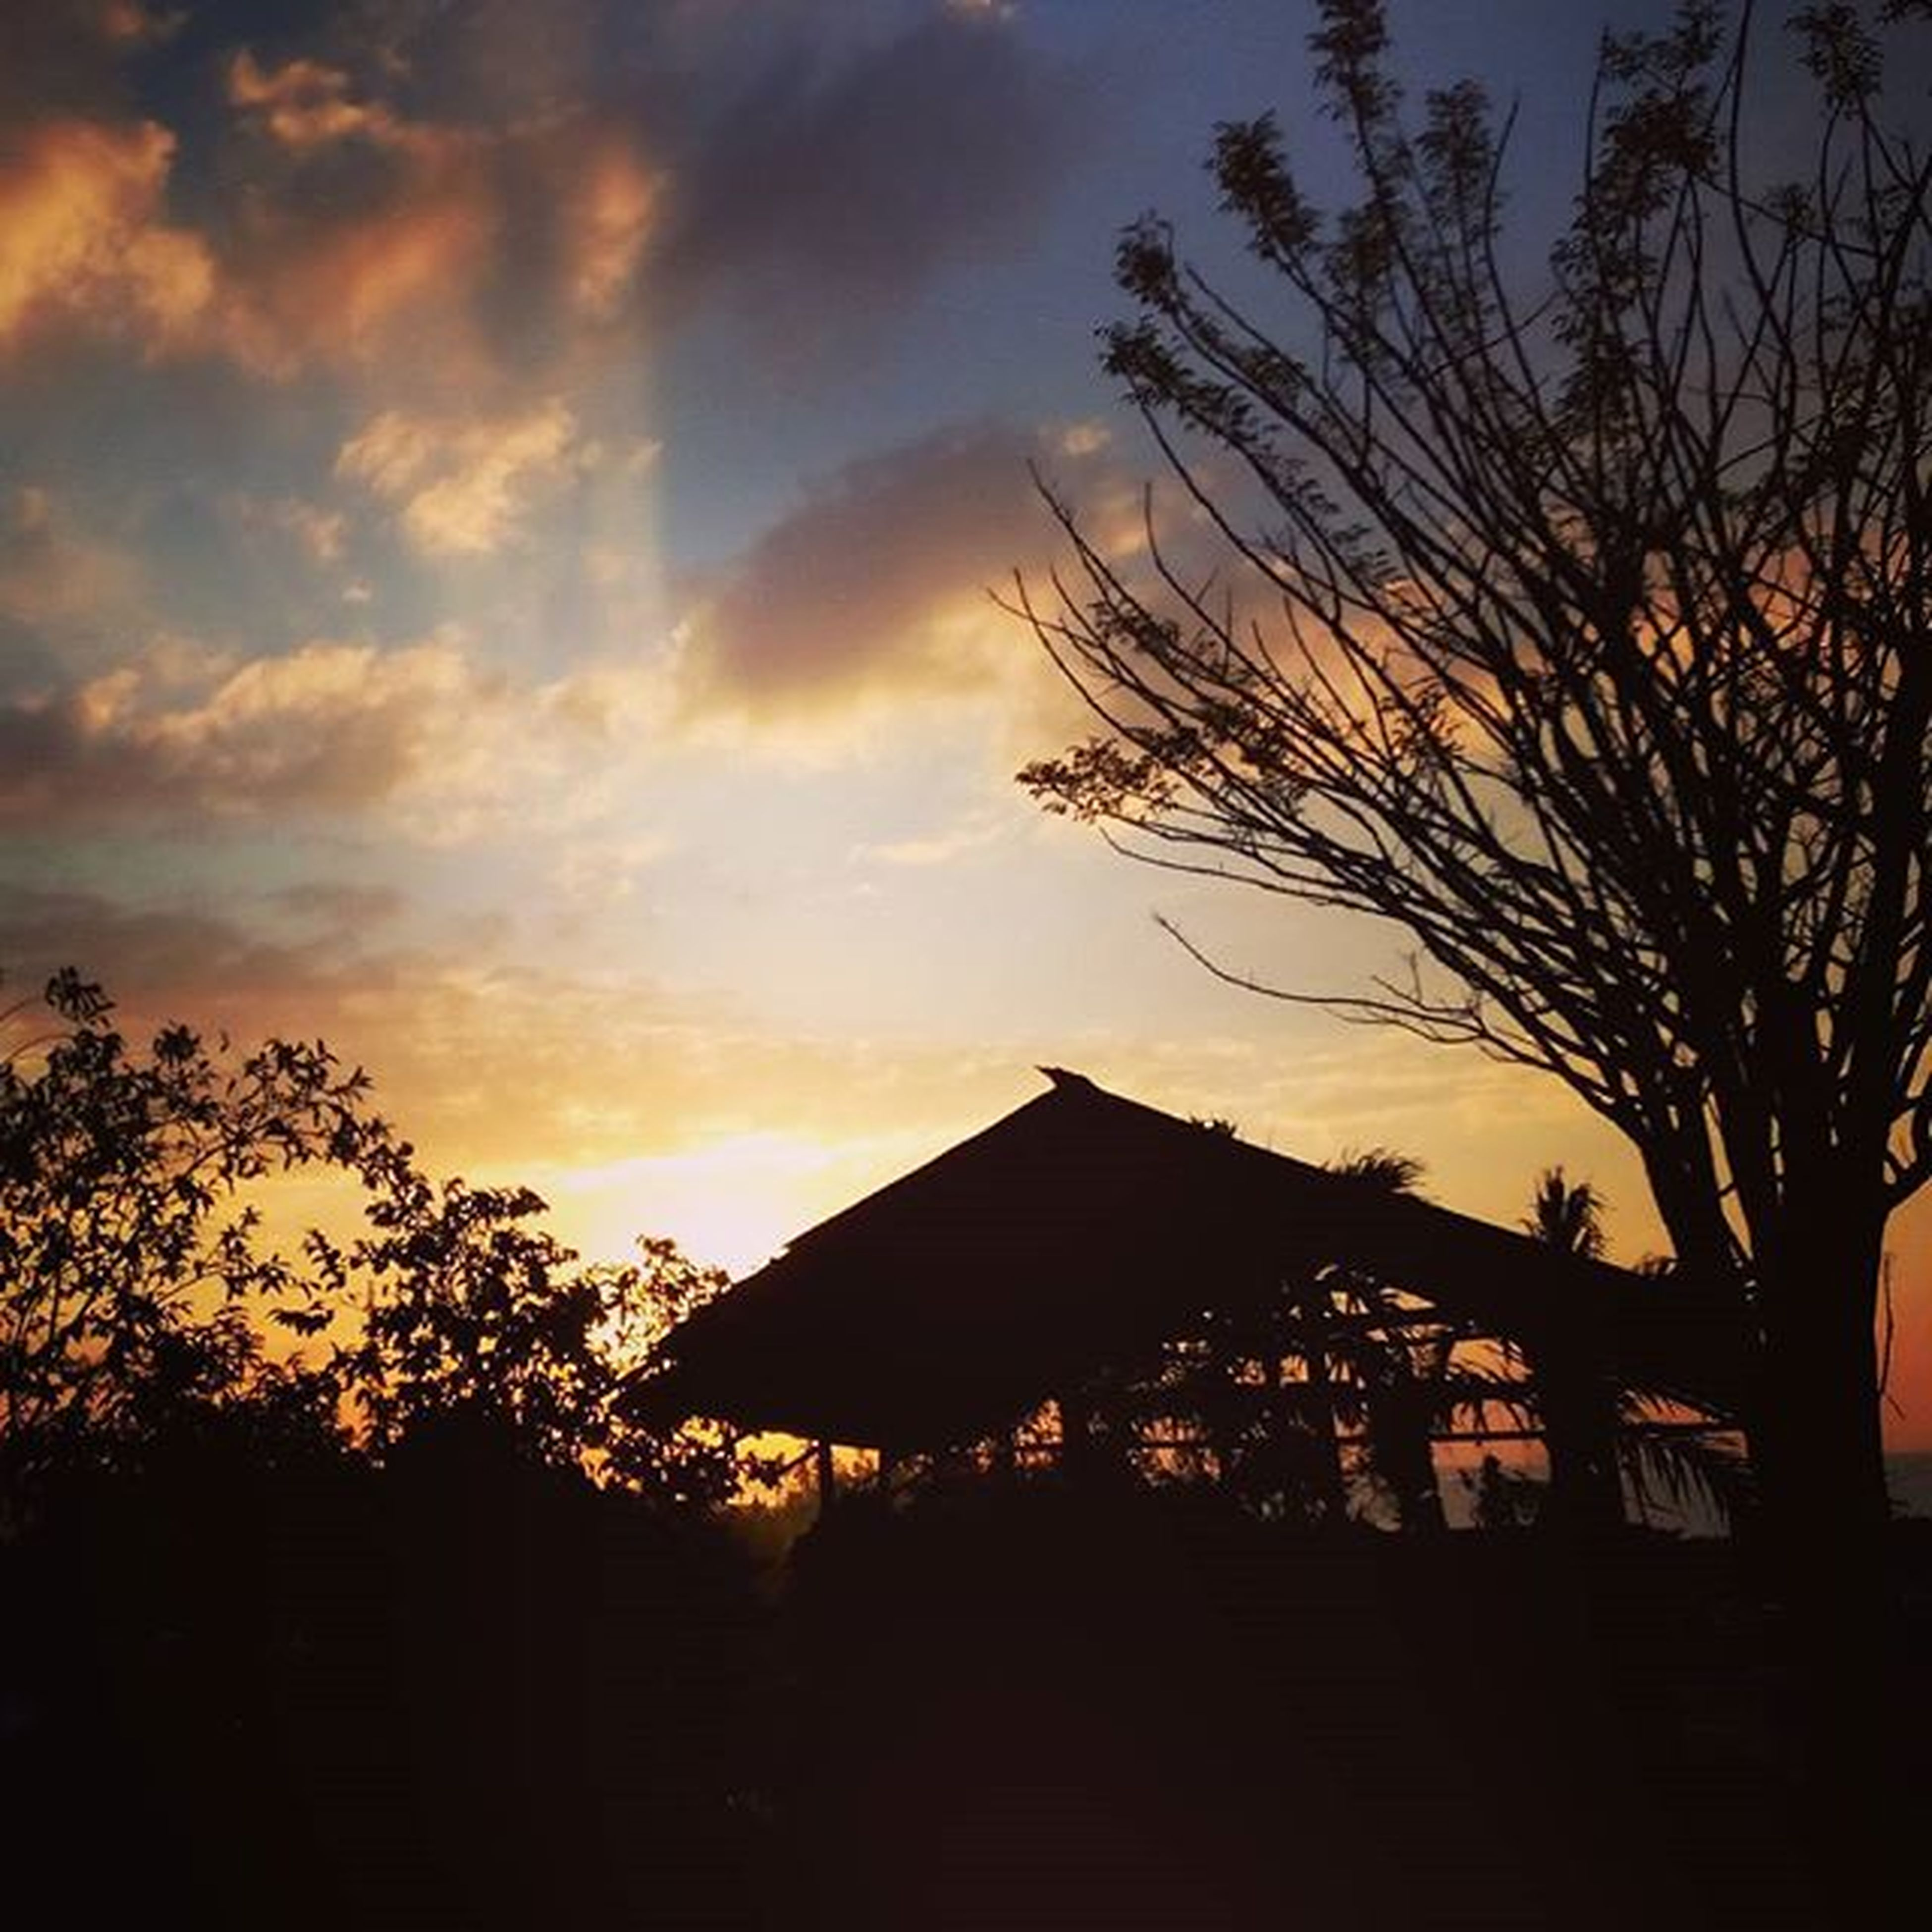 sunset, silhouette, sky, tree, built structure, building exterior, architecture, house, cloud - sky, bare tree, orange color, dusk, dark, nature, scenics, tranquility, beauty in nature, tranquil scene, cloud, outdoors